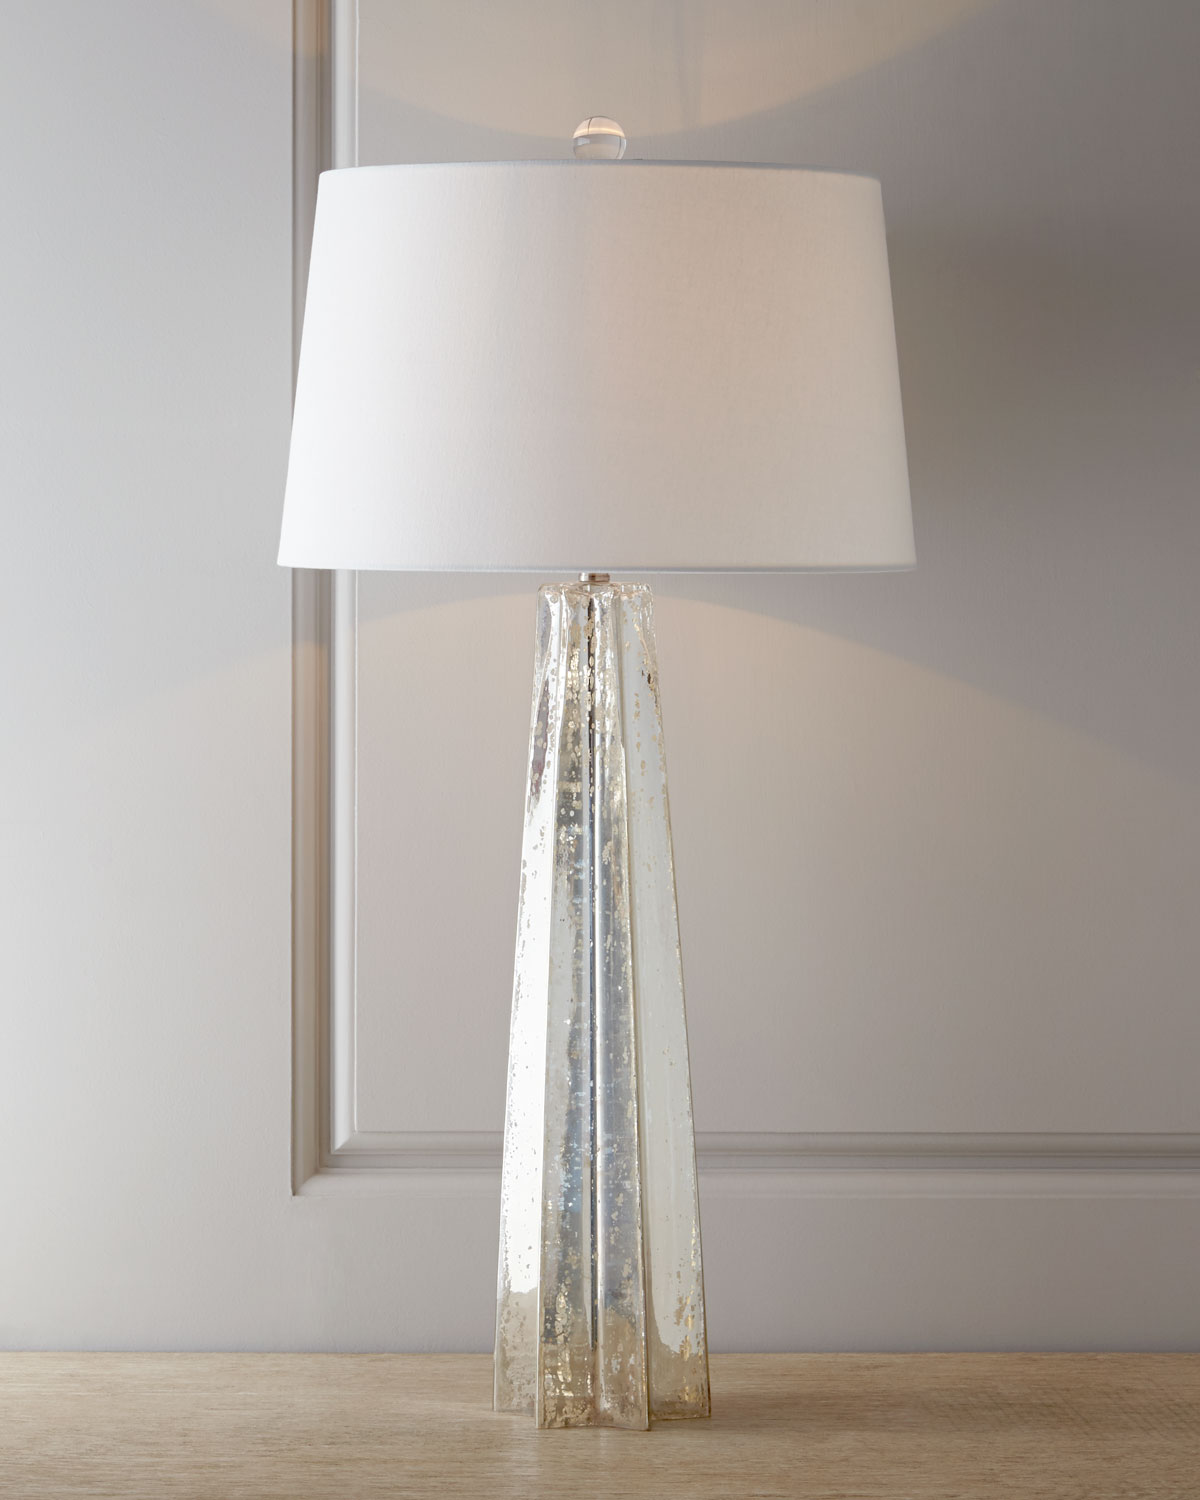 regina table andrew lighting milano products pair lamp s home design of lamps enlarged